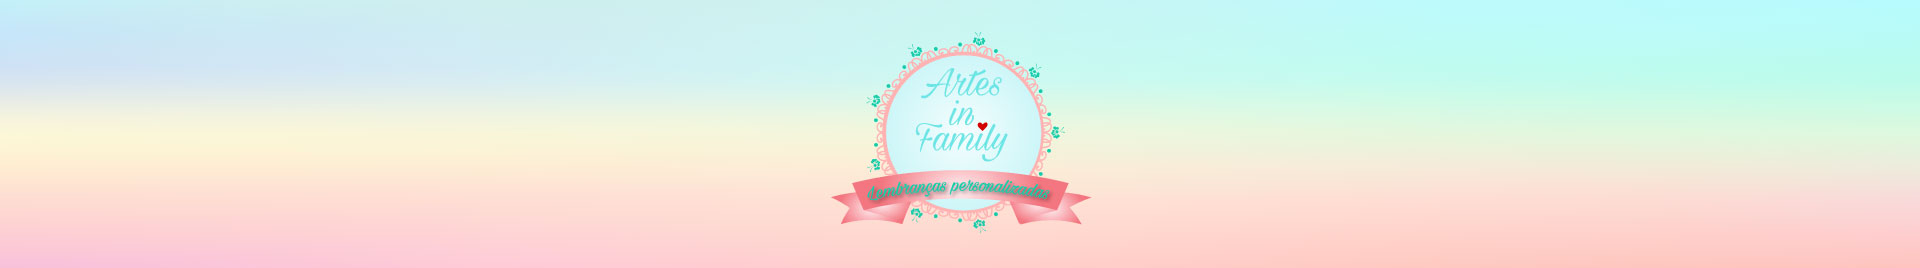 Artes in Family